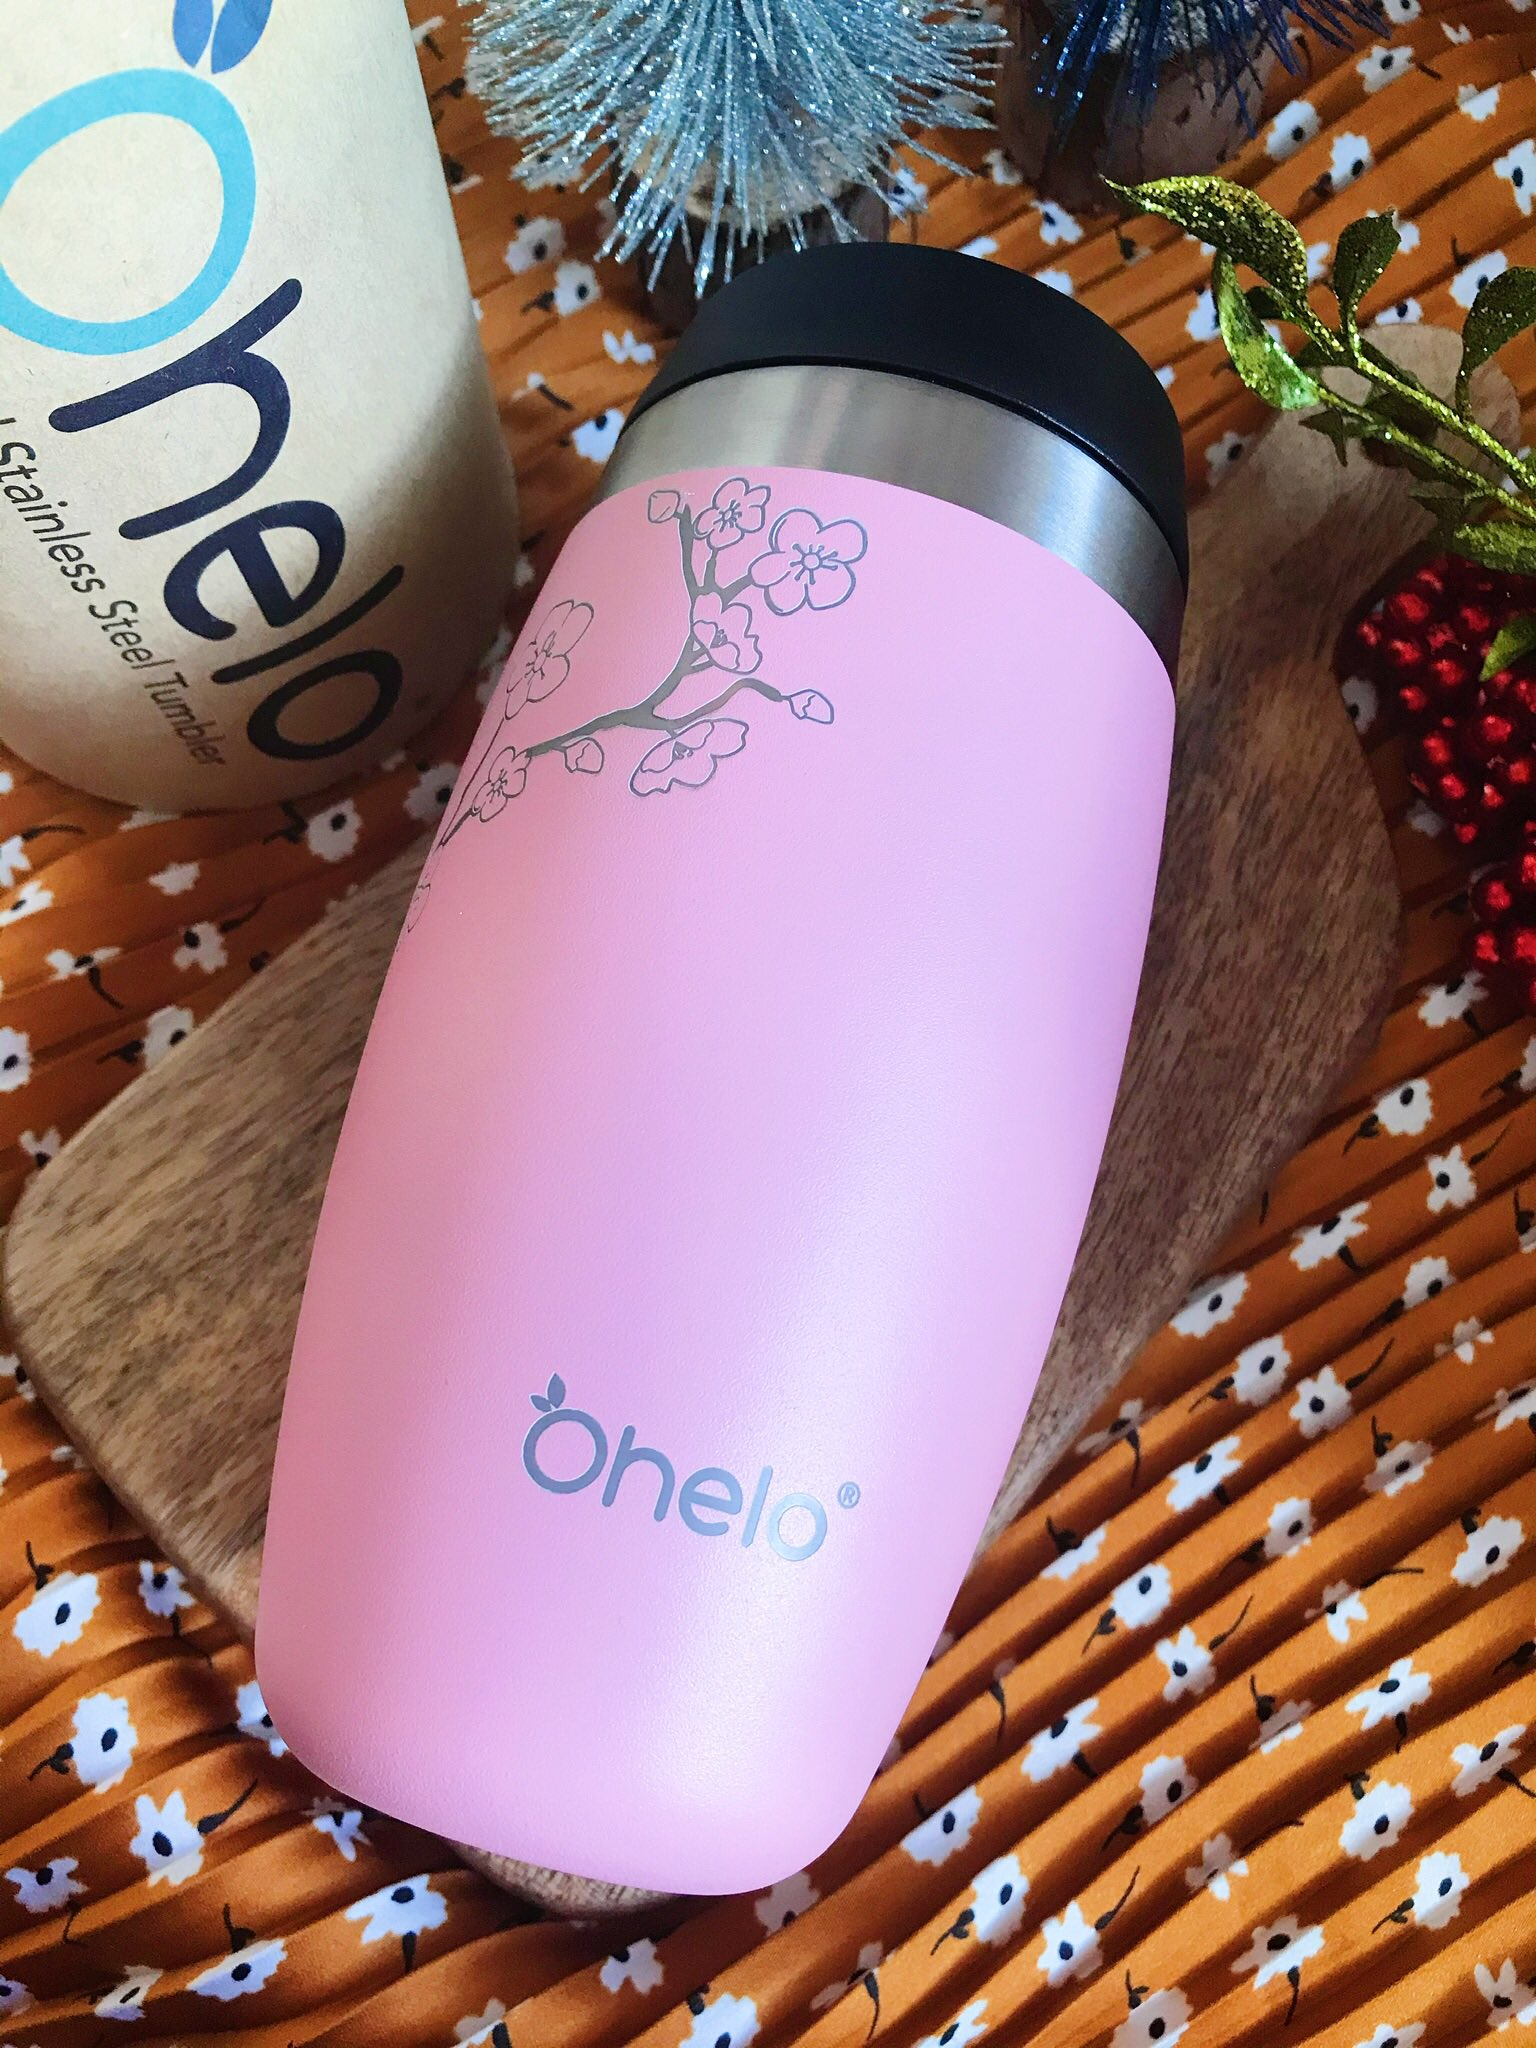 Ohelo Pink Blossom Travel Cup on wooden chopping board, on orange scarf as background